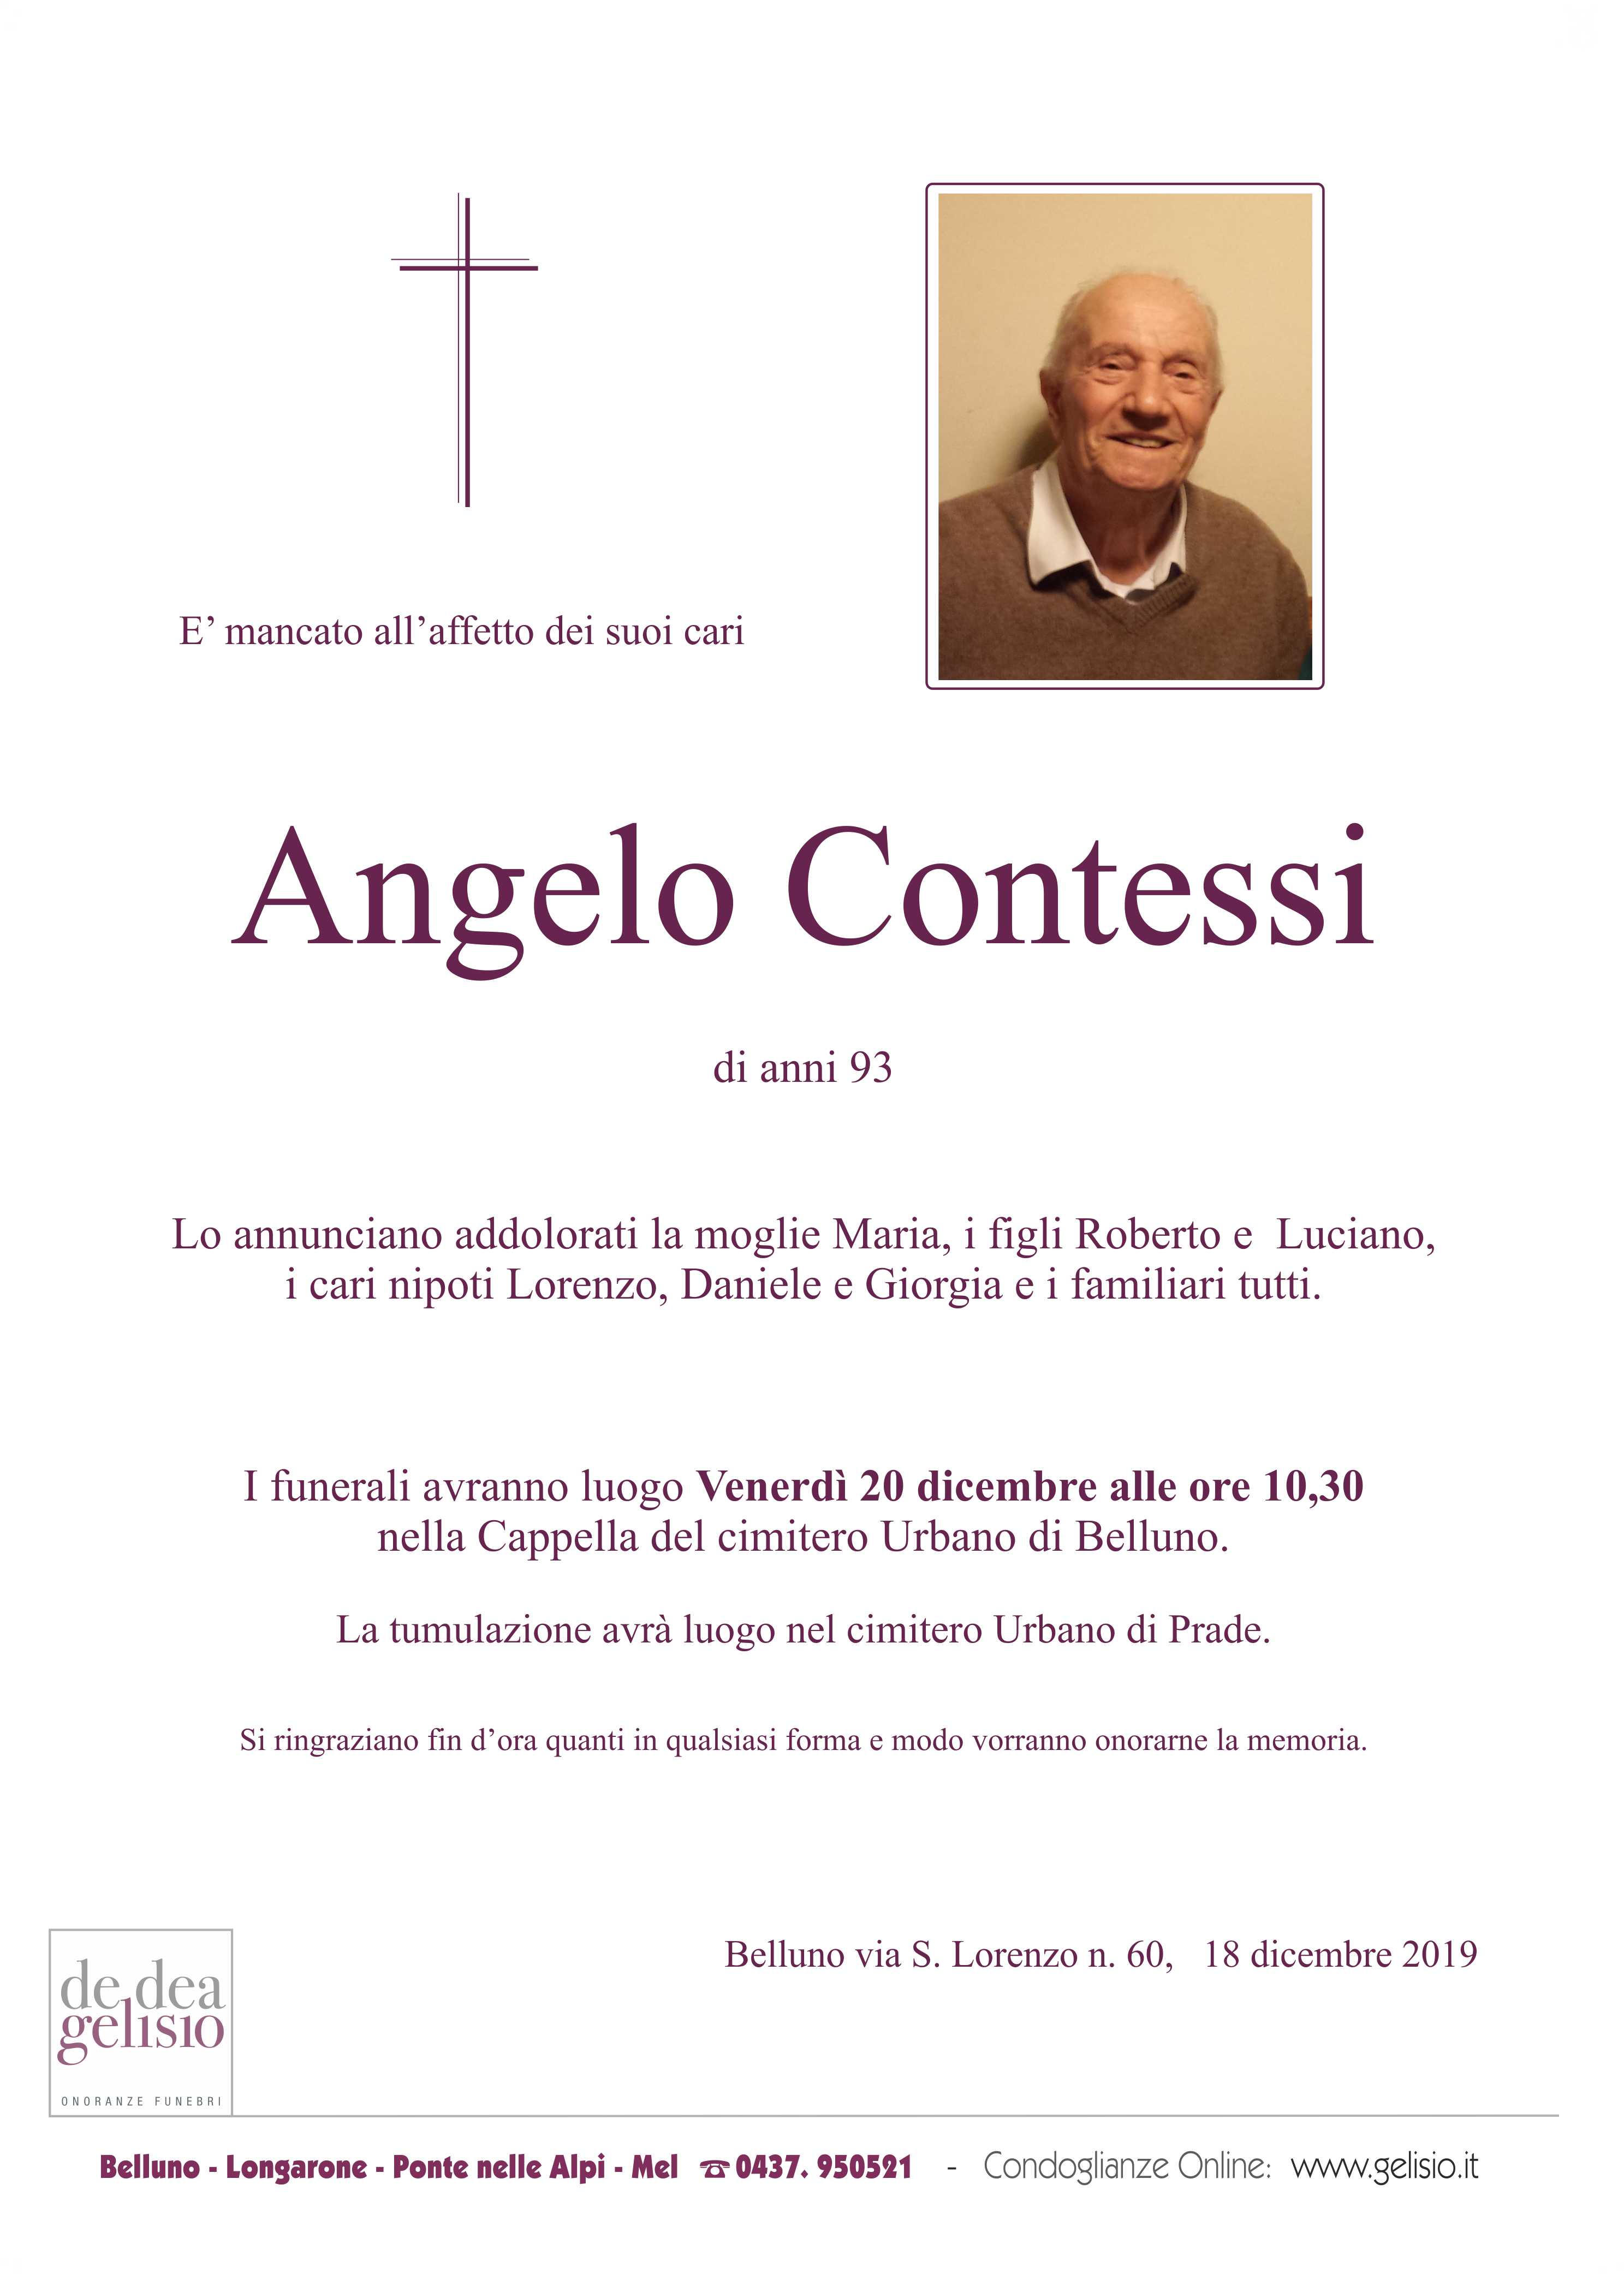 Contessi Angelo